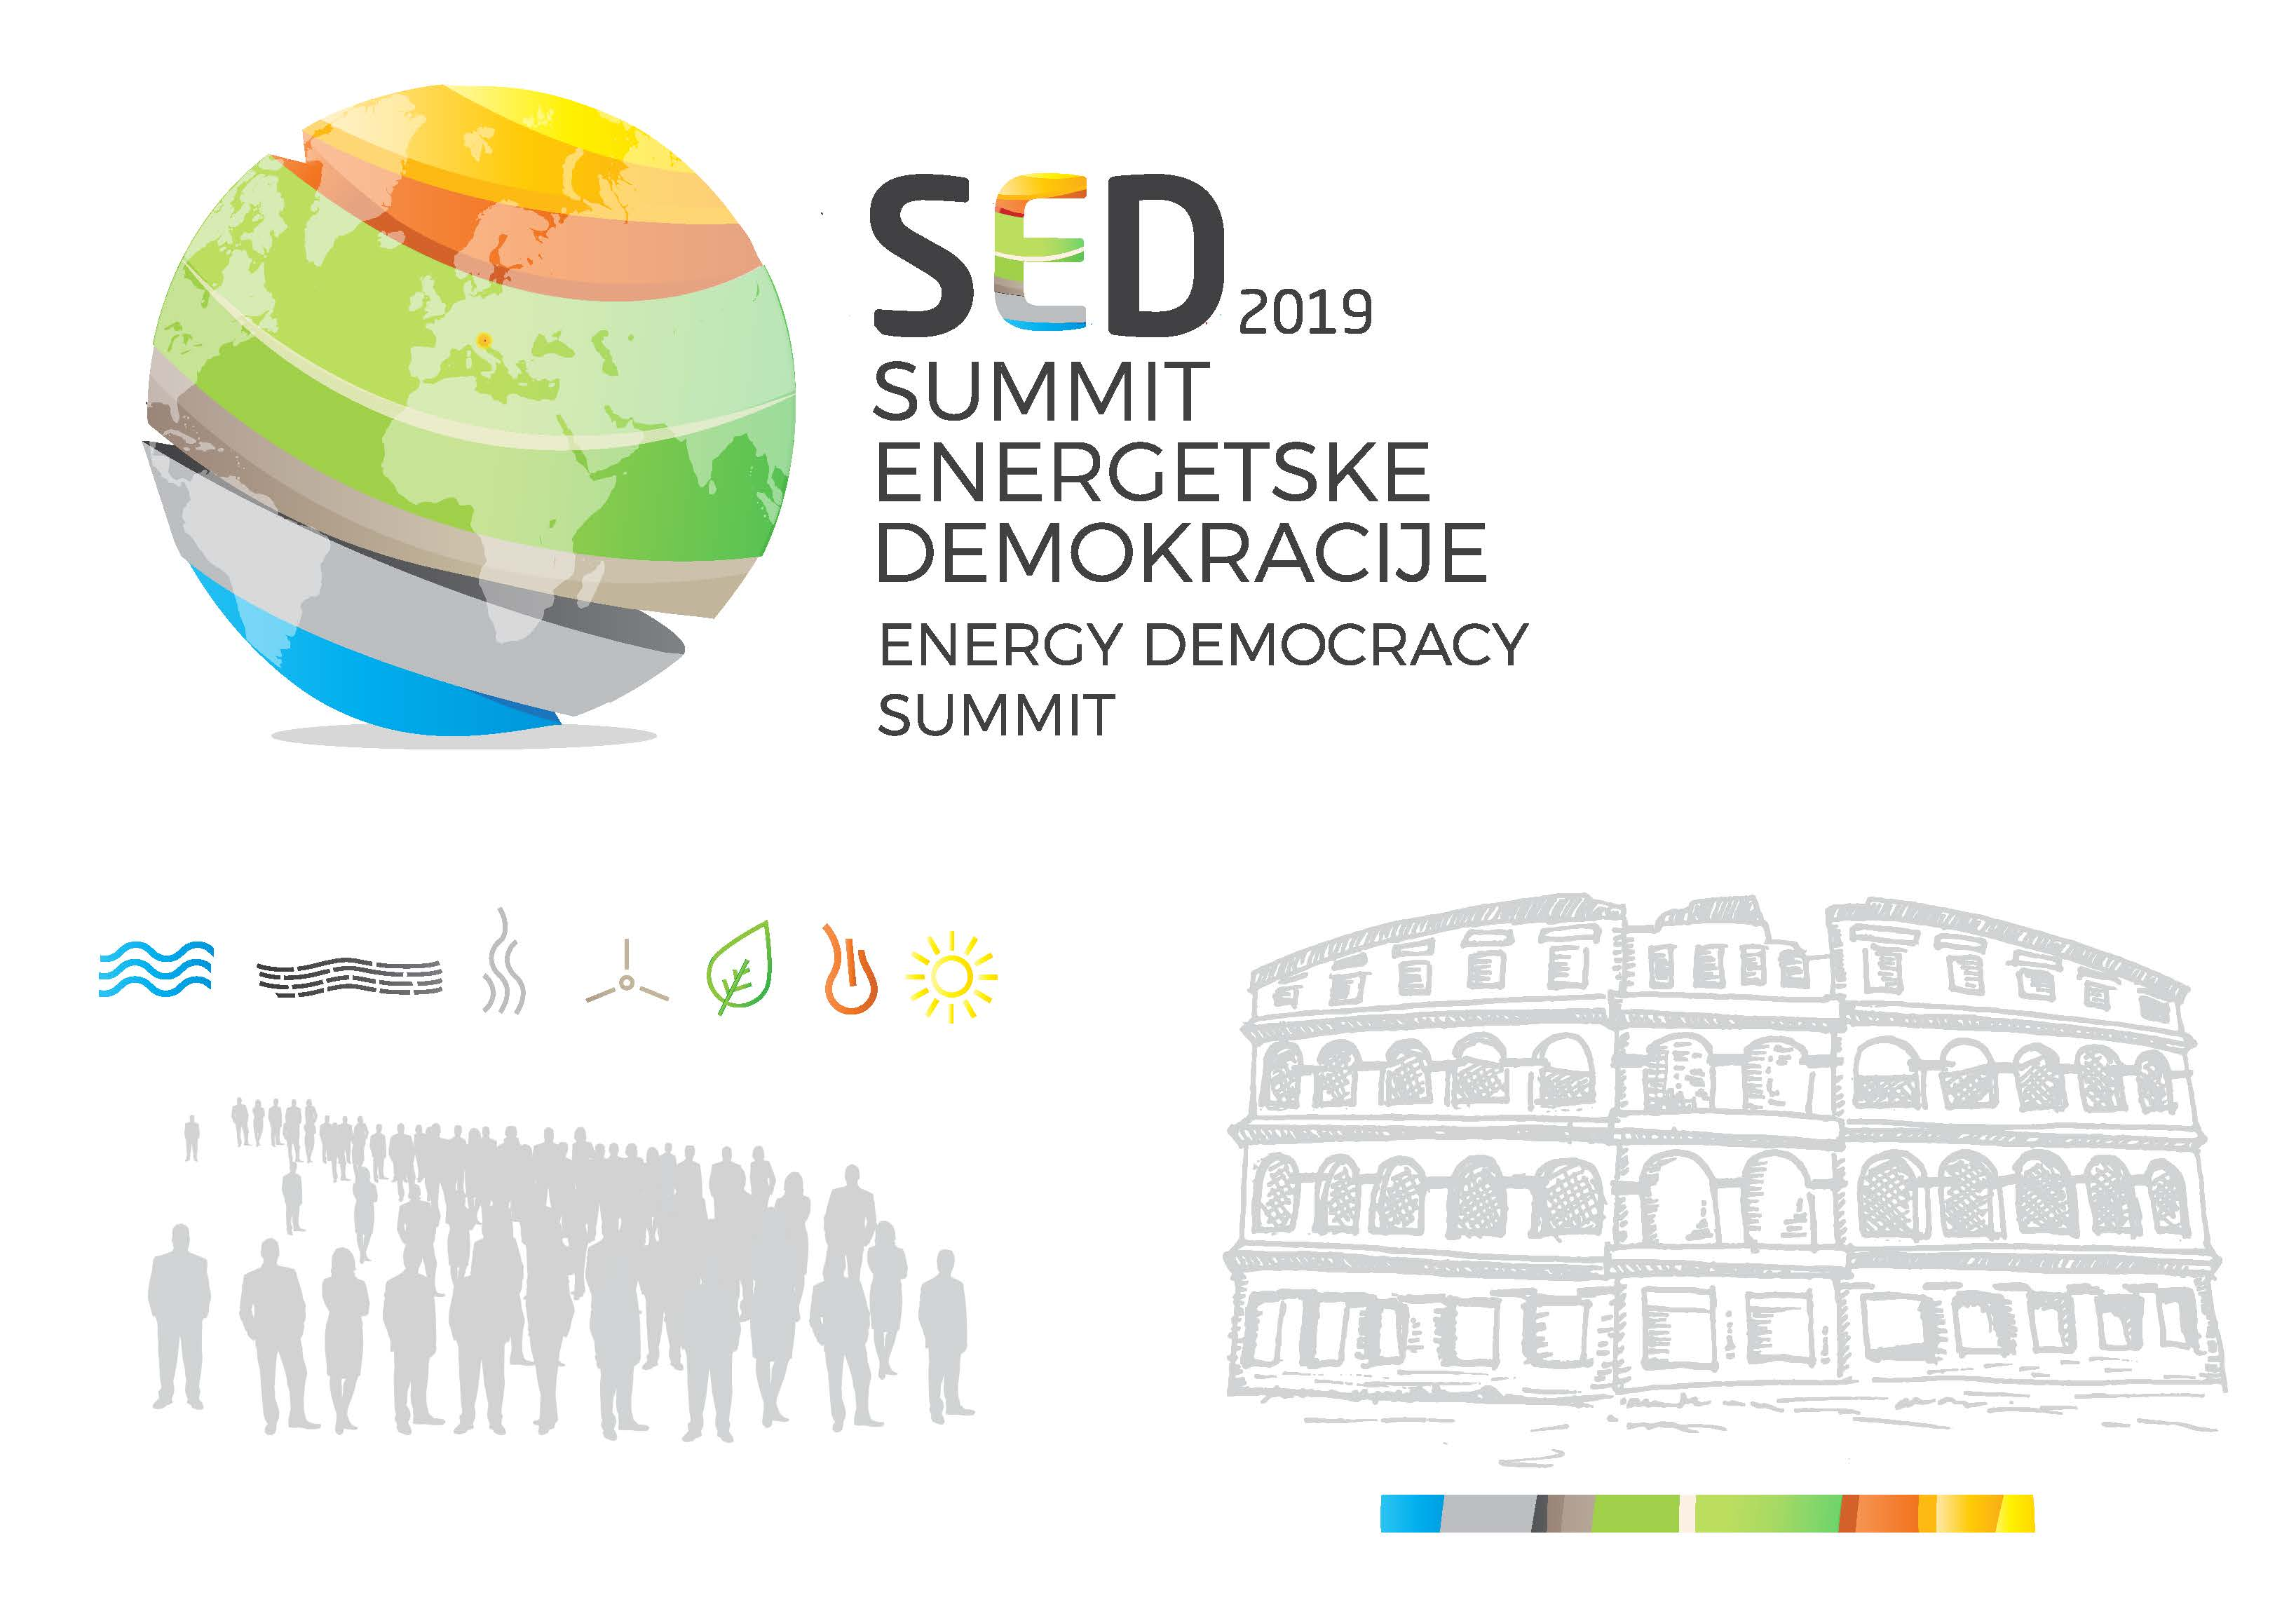 Summit energetske demokracije - od 10. do 12. travnja 2019. godine, Pula